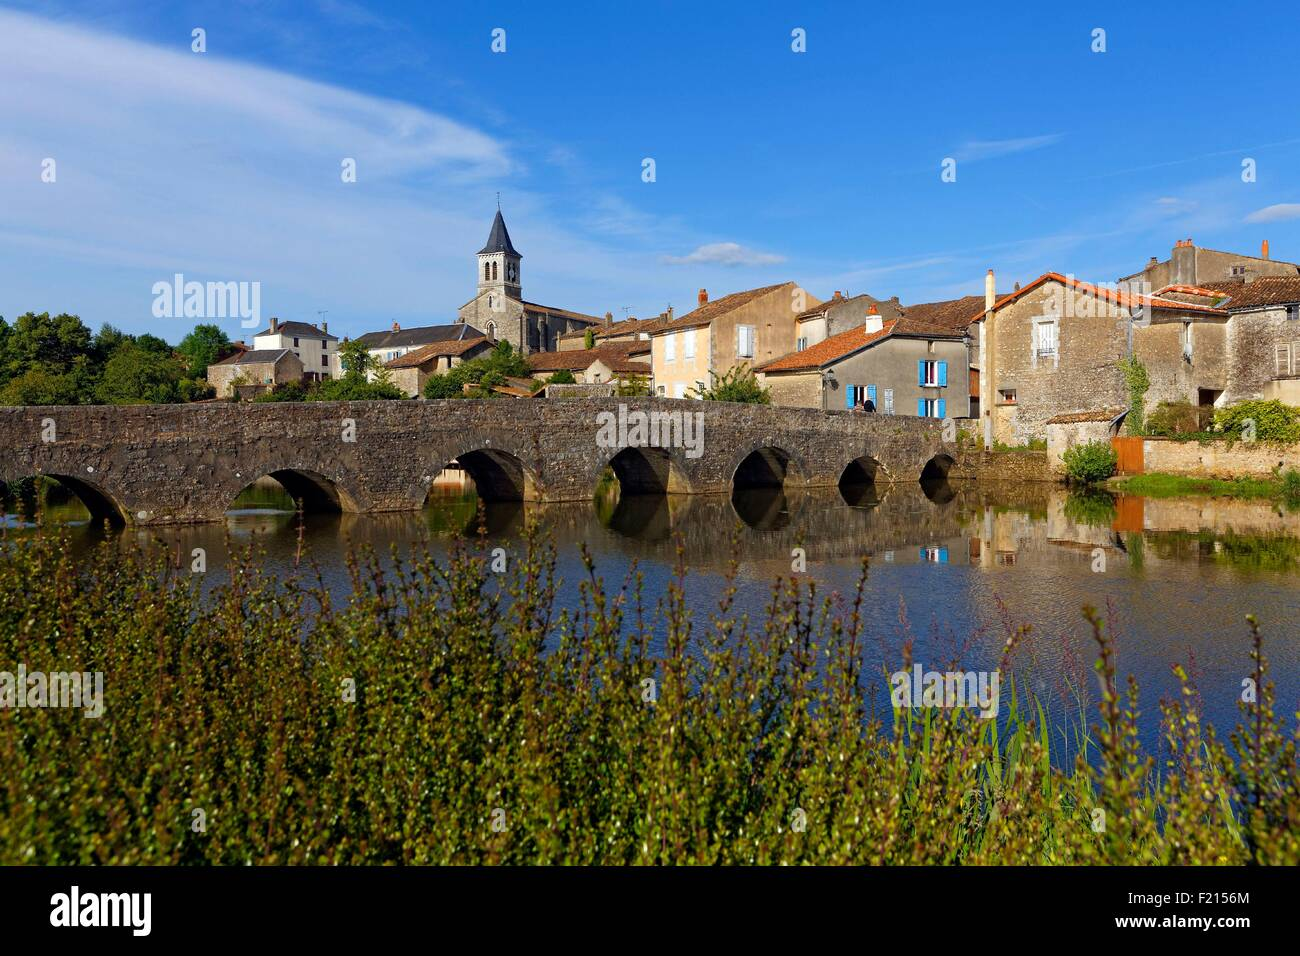 France, Vienne, Sanxay, general view with the Roman bridge, told the shepherds bridge, built in 1688 to Louis XIV - Stock Image